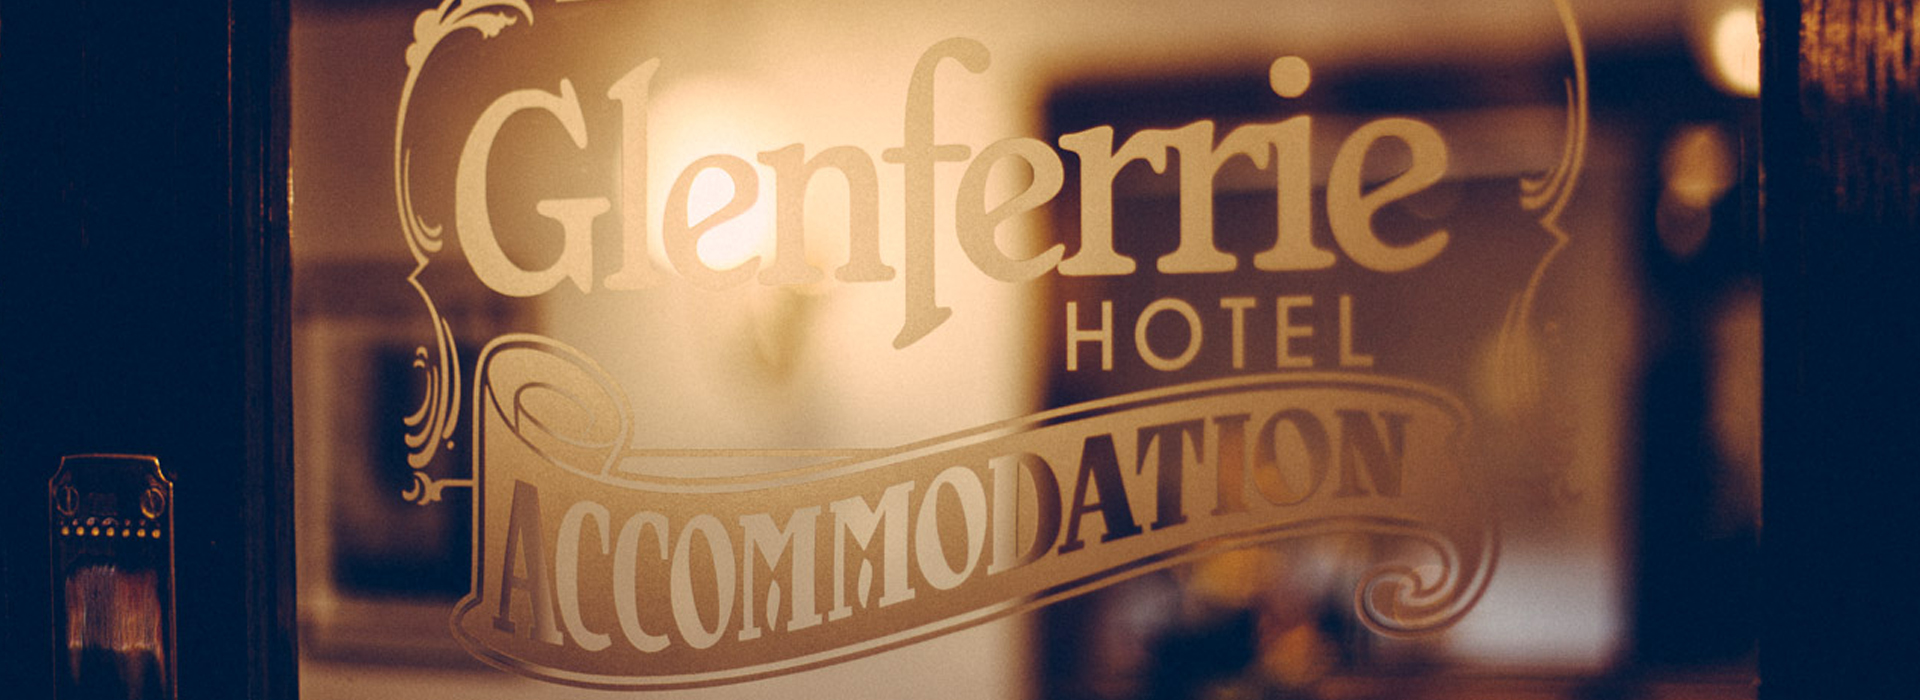 glenferrie hotel melbourne